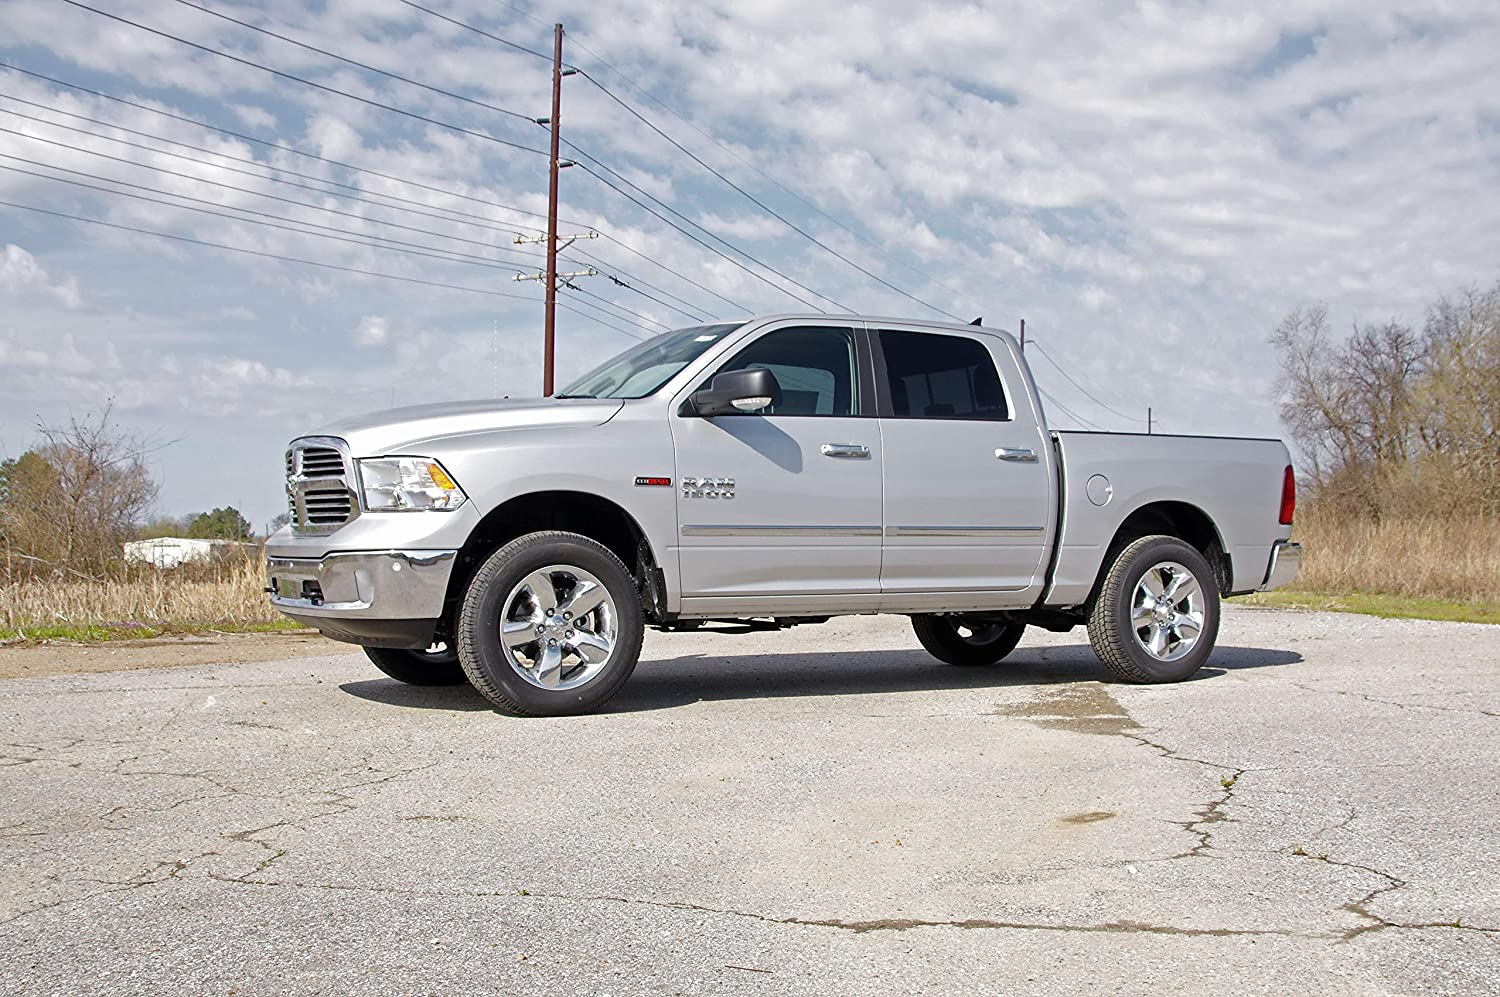 Rough Country 7578 Leveling Kit 2 fits 1994-2008 RAM Truck 1500 2WD Suspension System Increased Ground Clearance